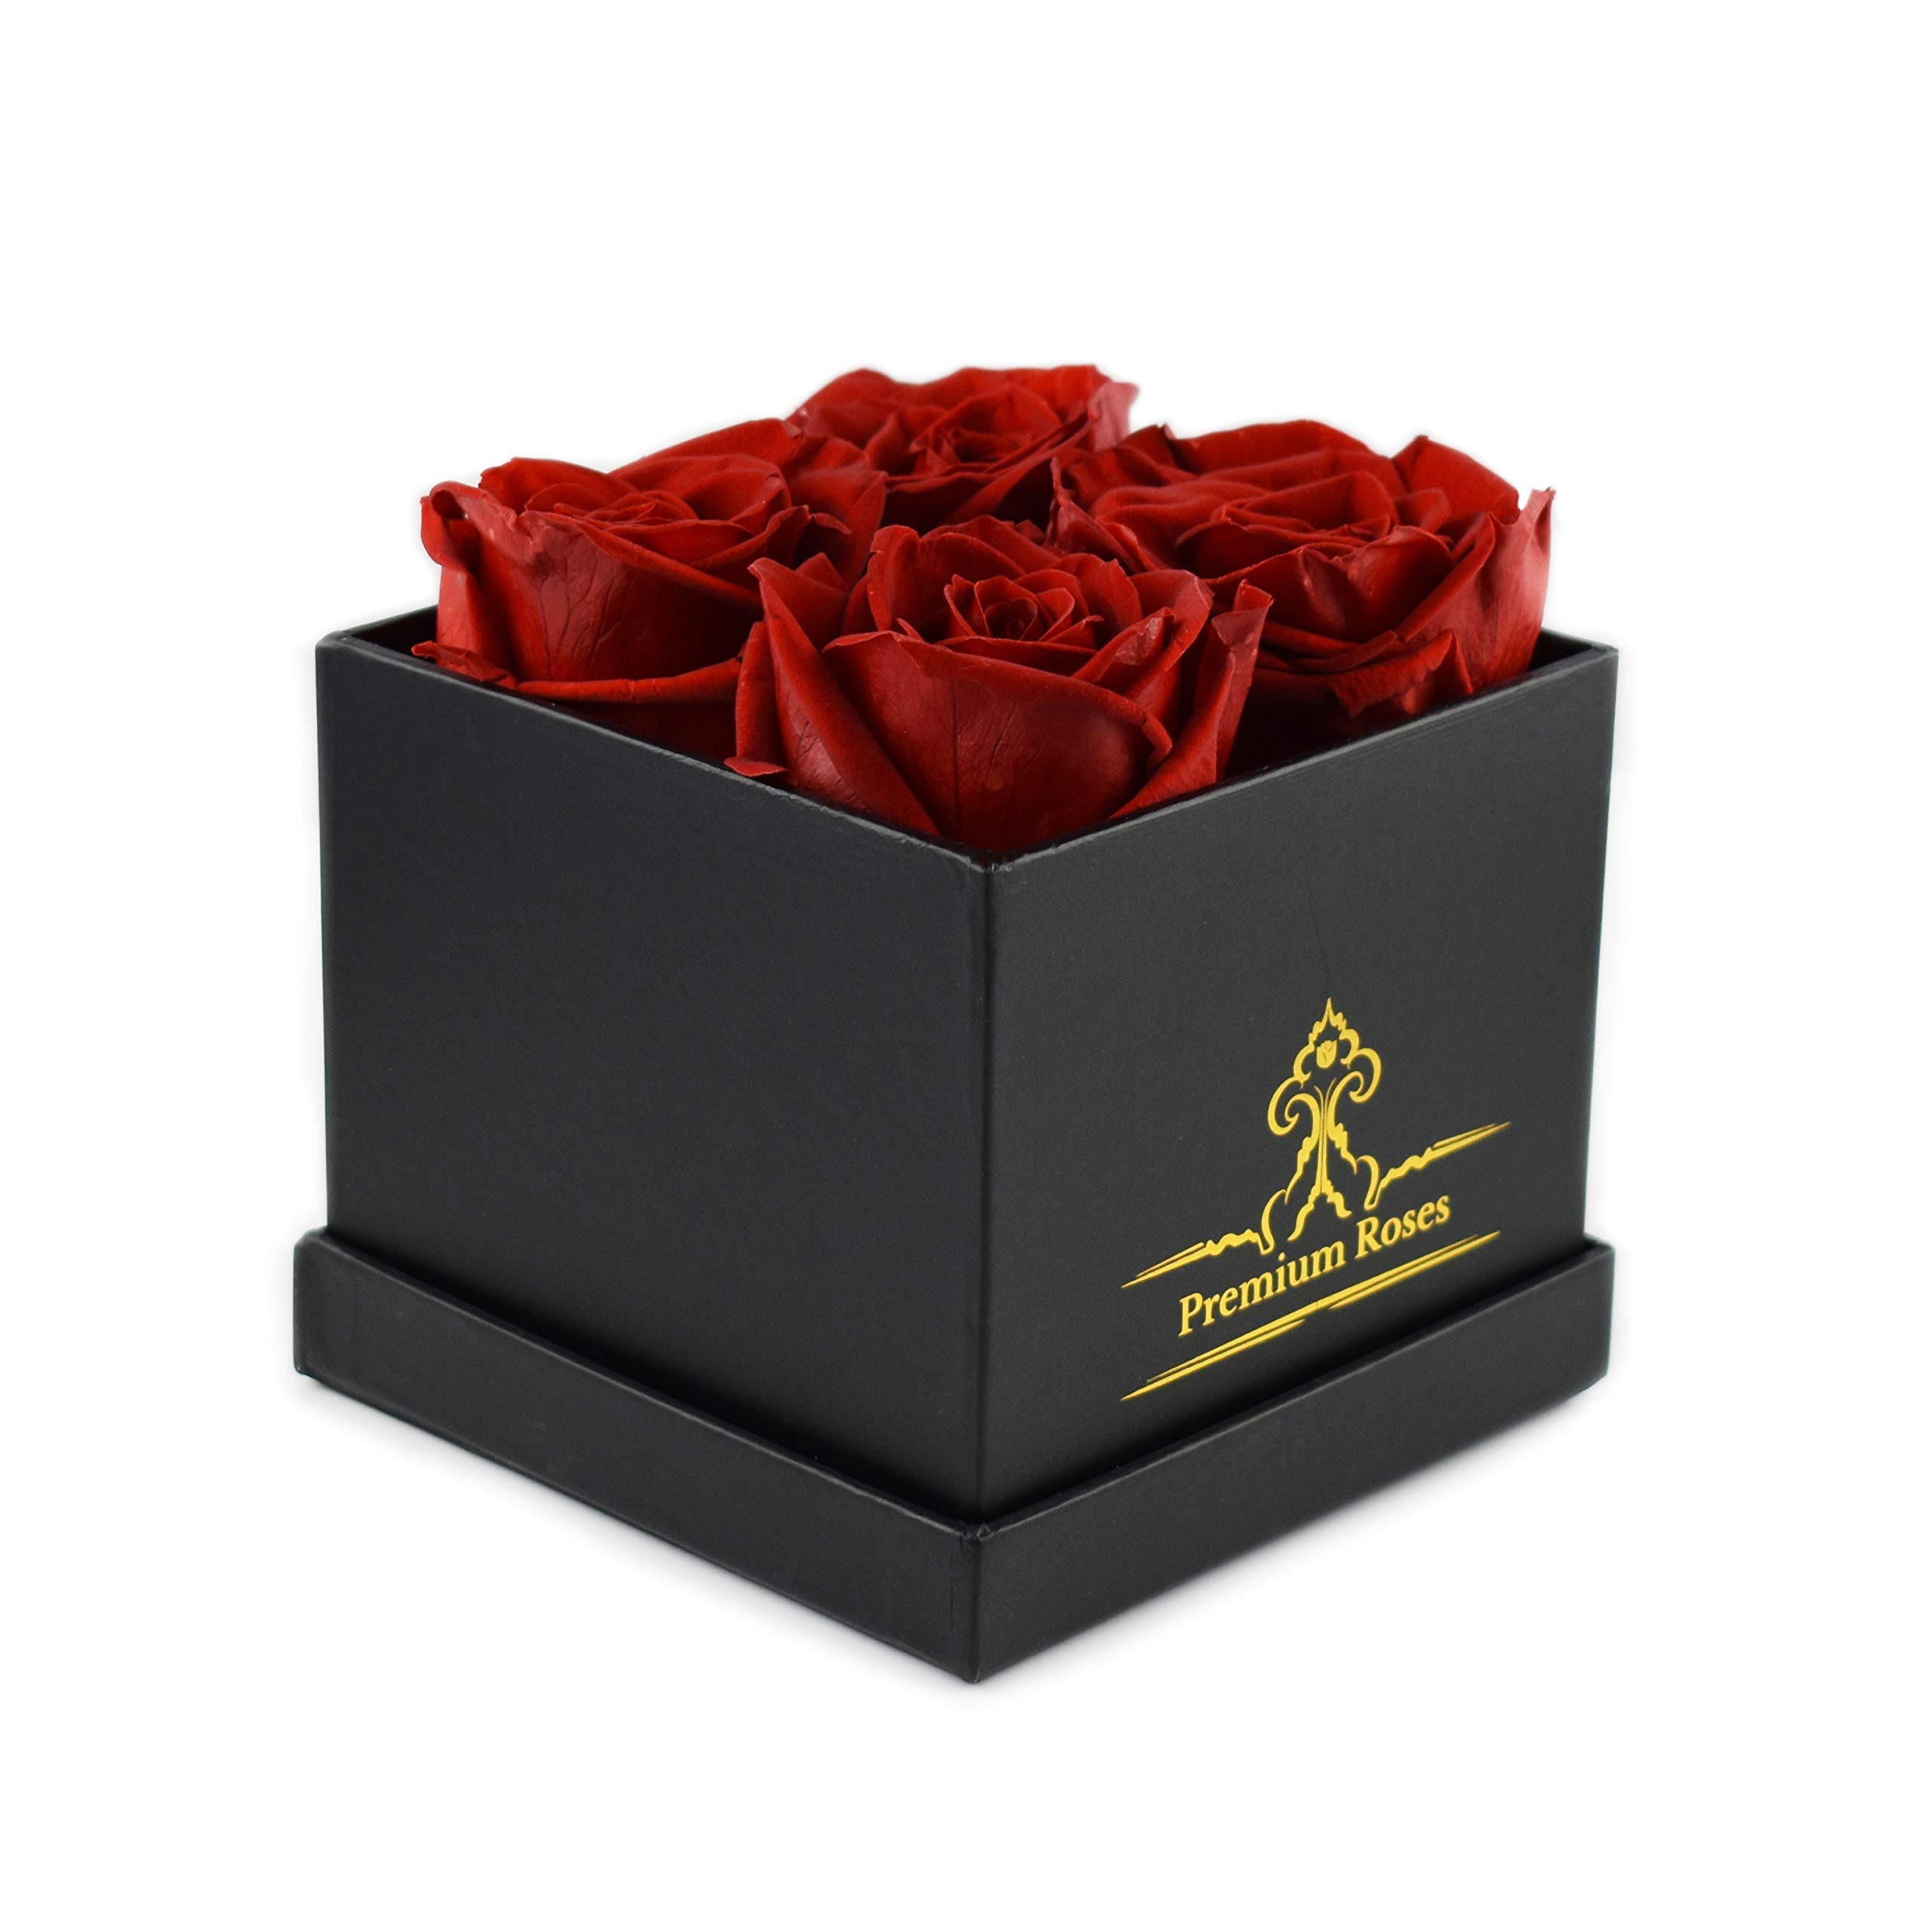 Premium Roses | Model Posh | Real Roses That Last 365 Days | Roses in a Box| Fresh Flowers (Black Box, Small) by Premium Roses (Image #1)